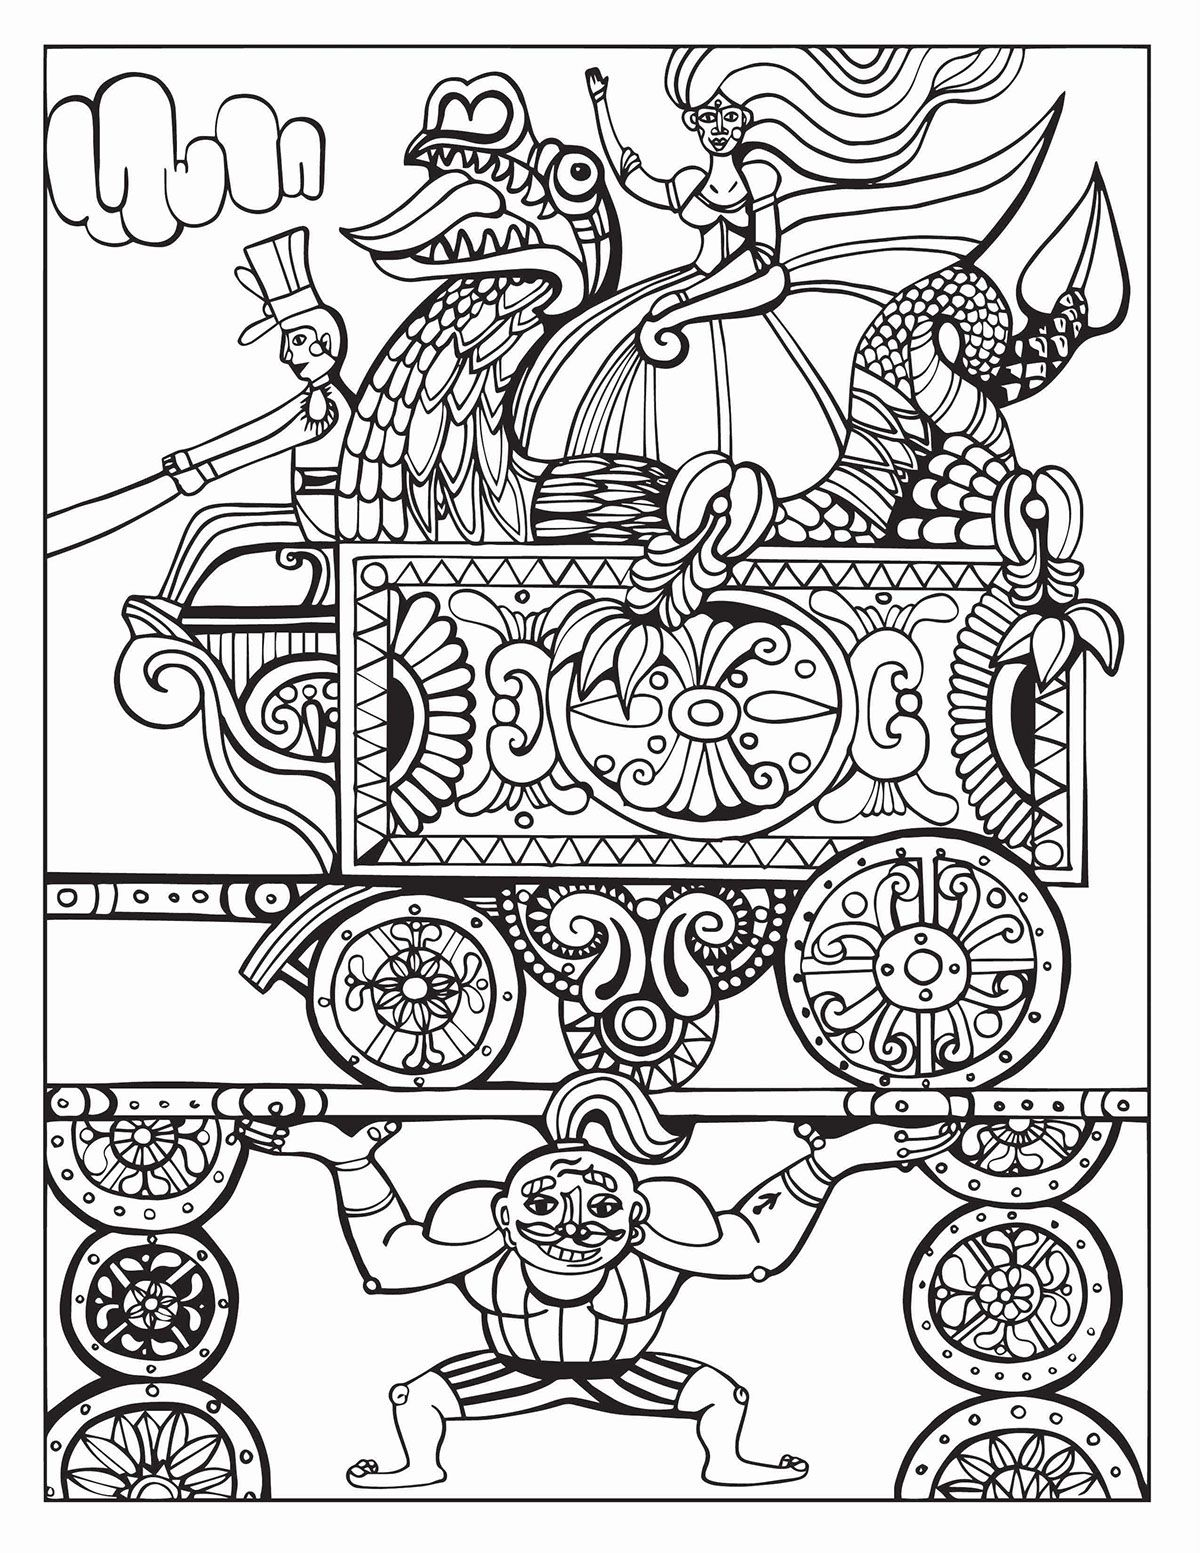 A Day At The Circus Coloring Page On Behance Adult Coloring